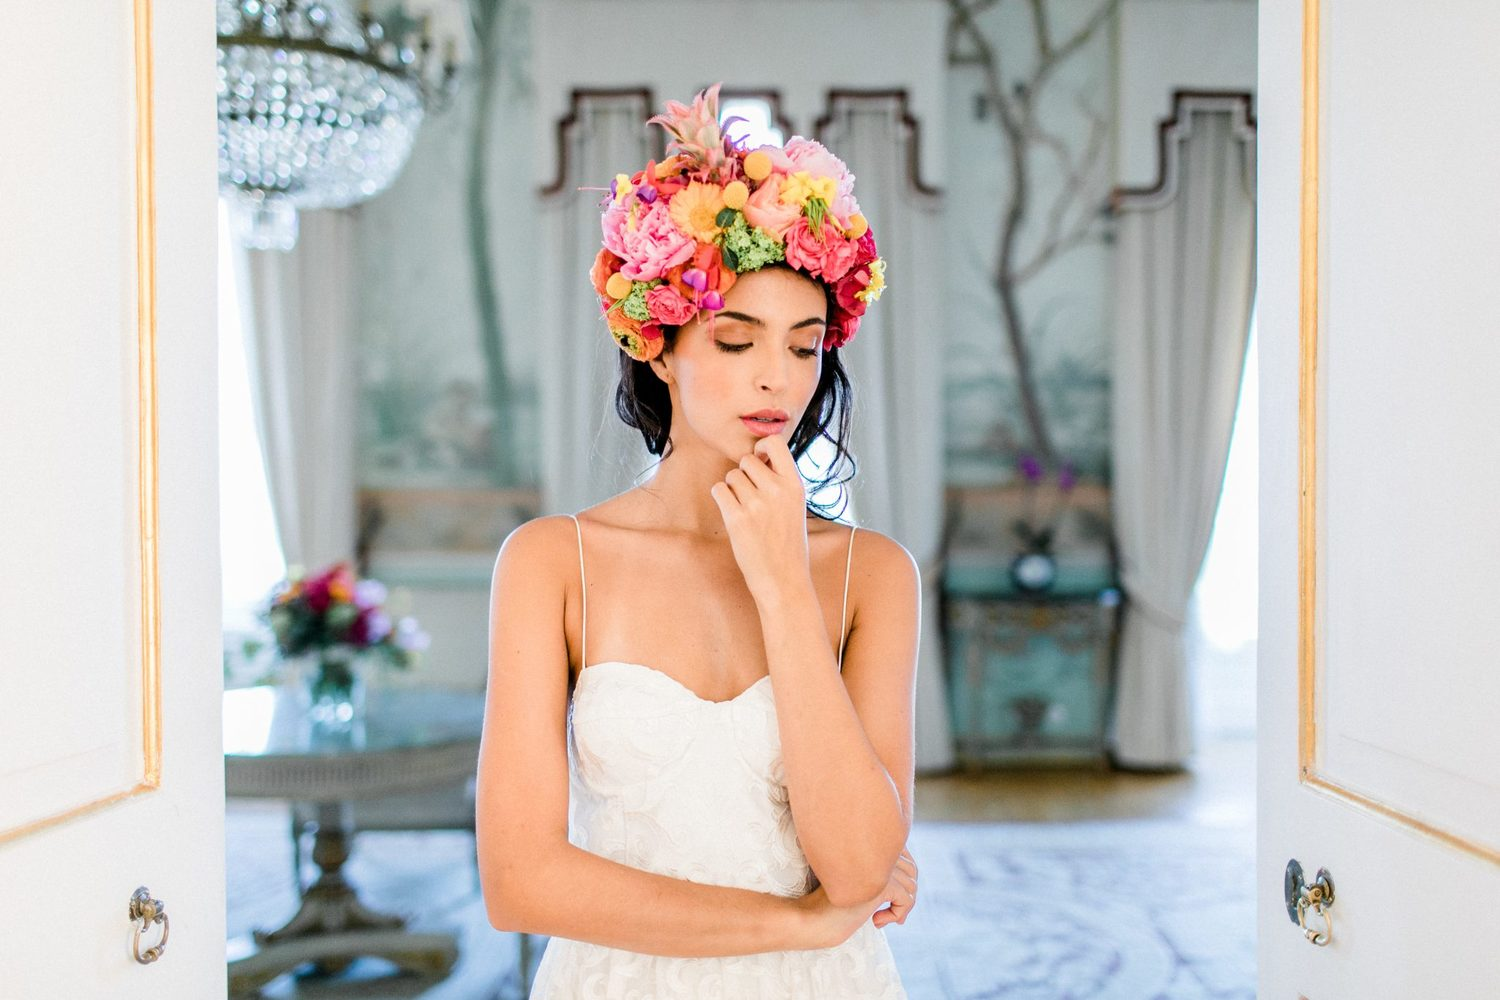 colourful wedding floral headpiece in palacio de seteais